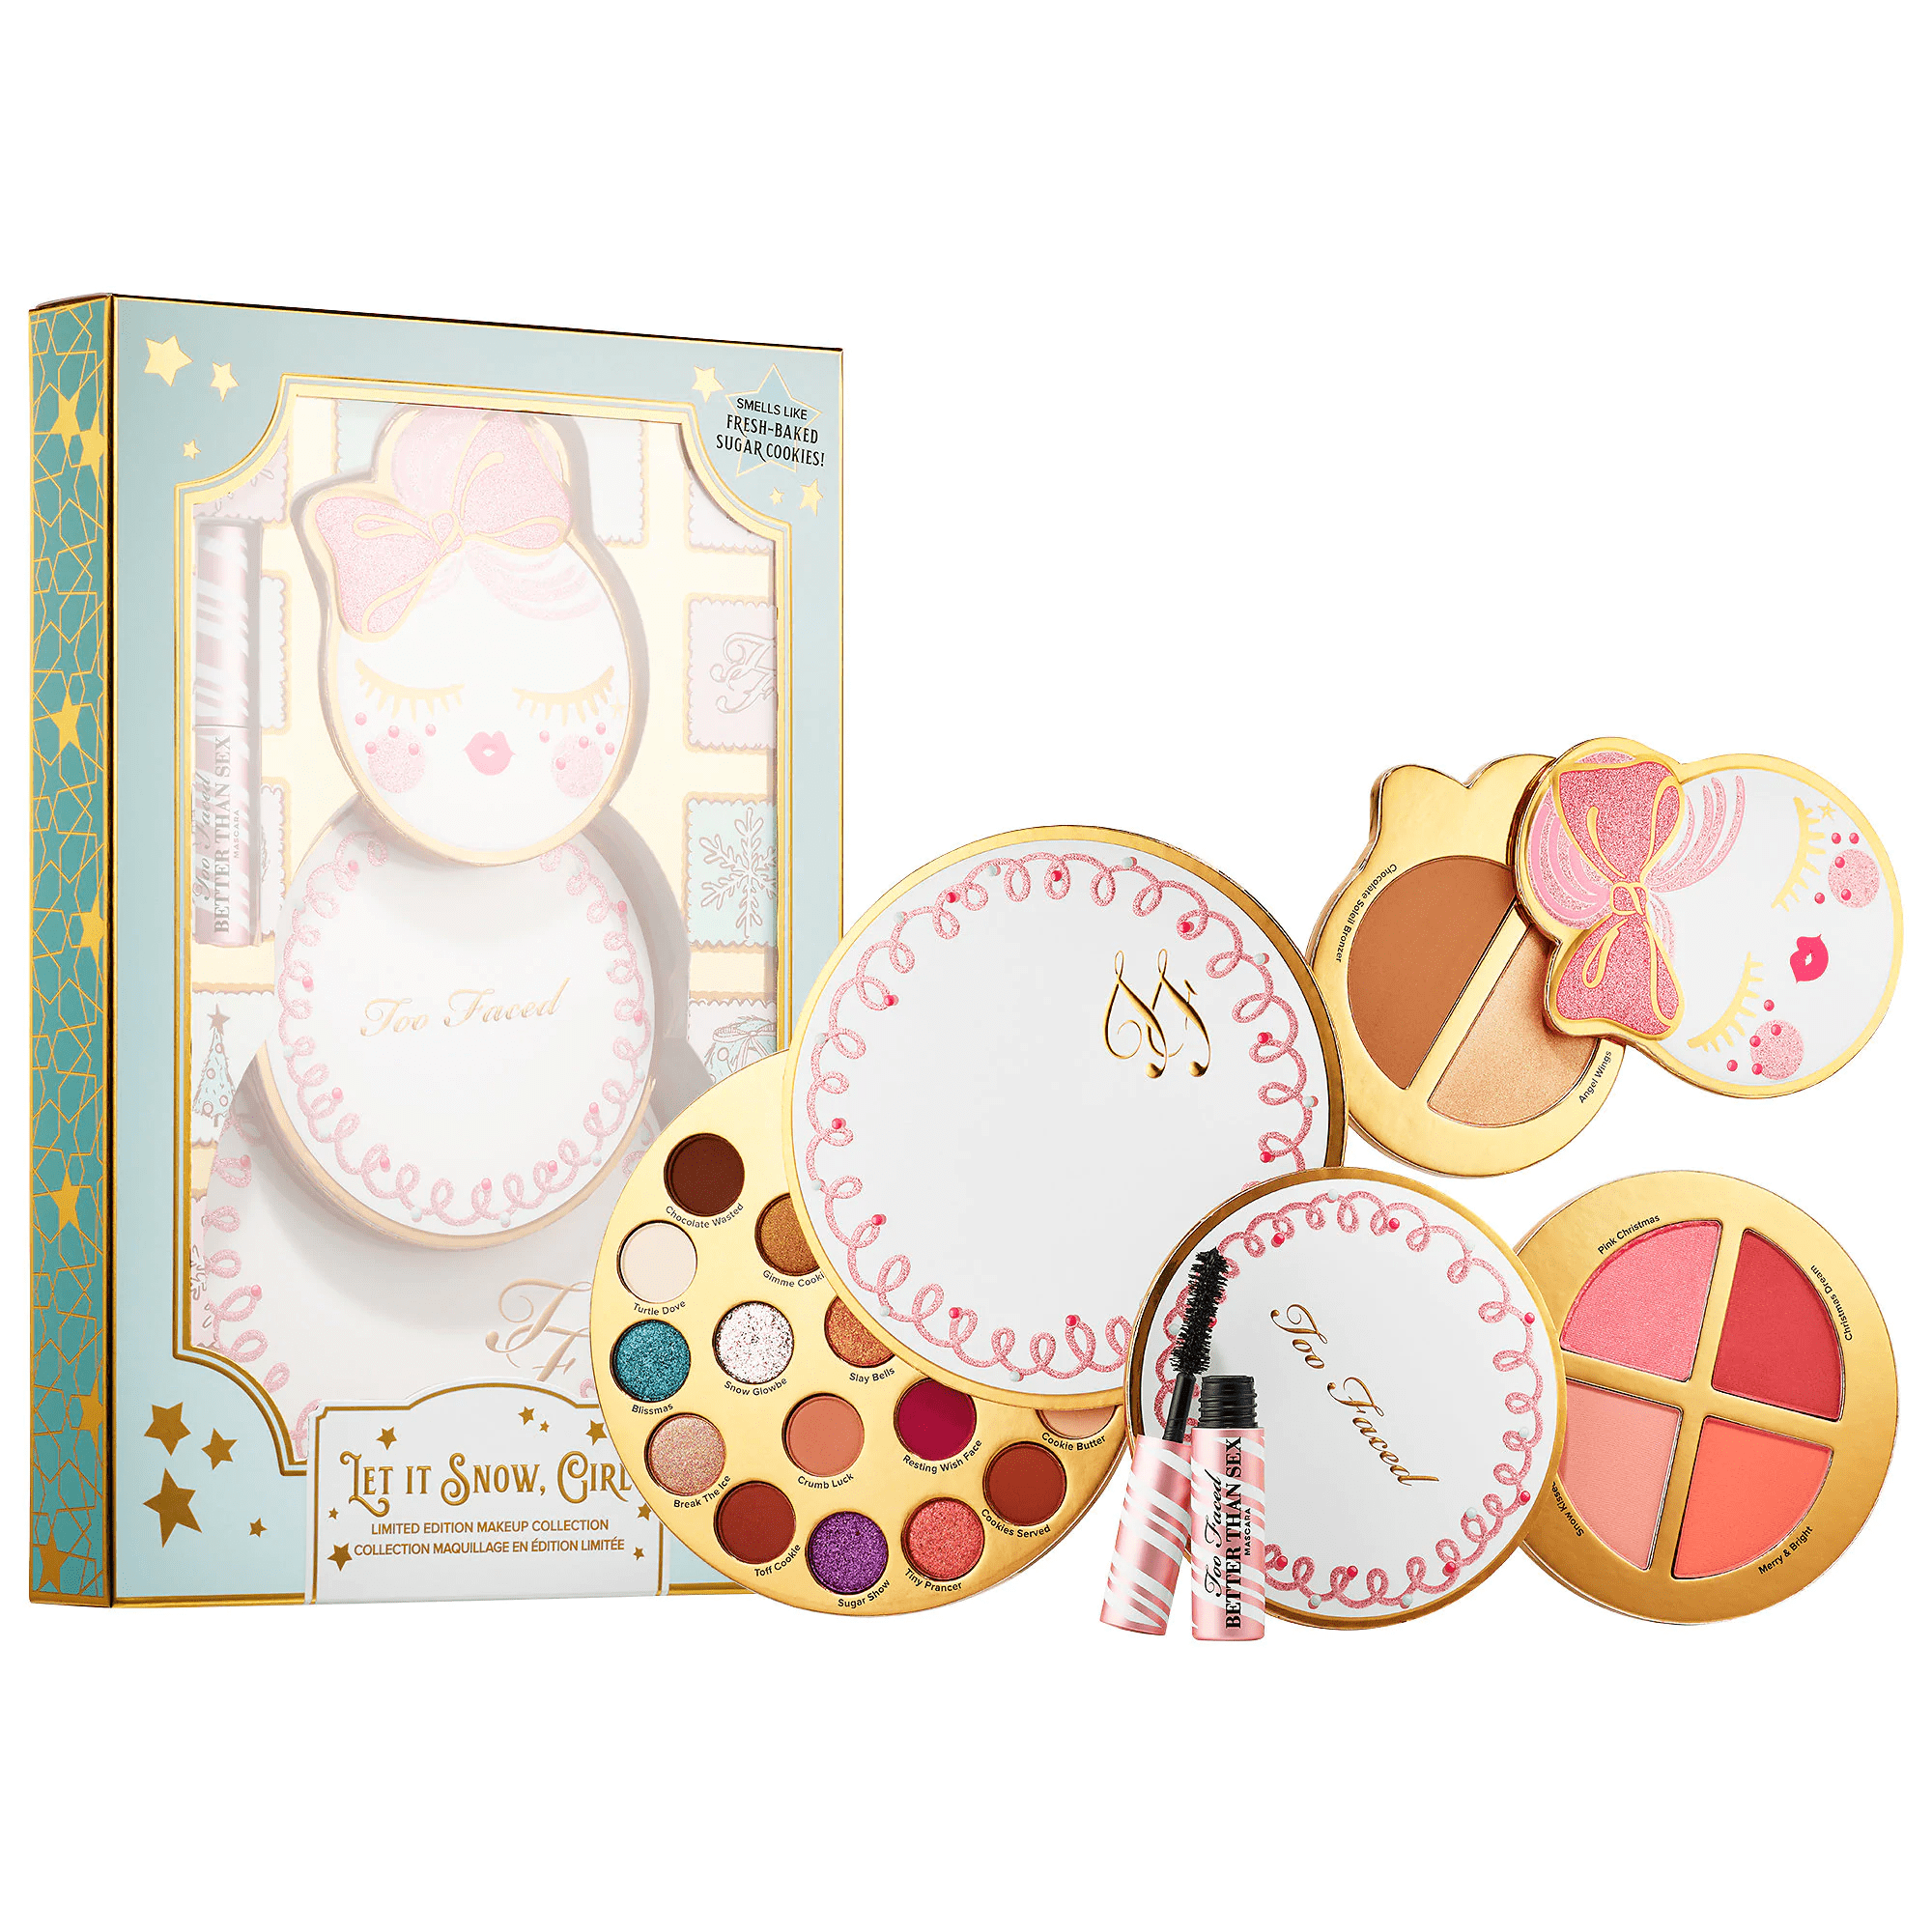 TOO FACED Let It Snow, Girl! - Limited Edition, Makeup Collection, London Loves Beauty